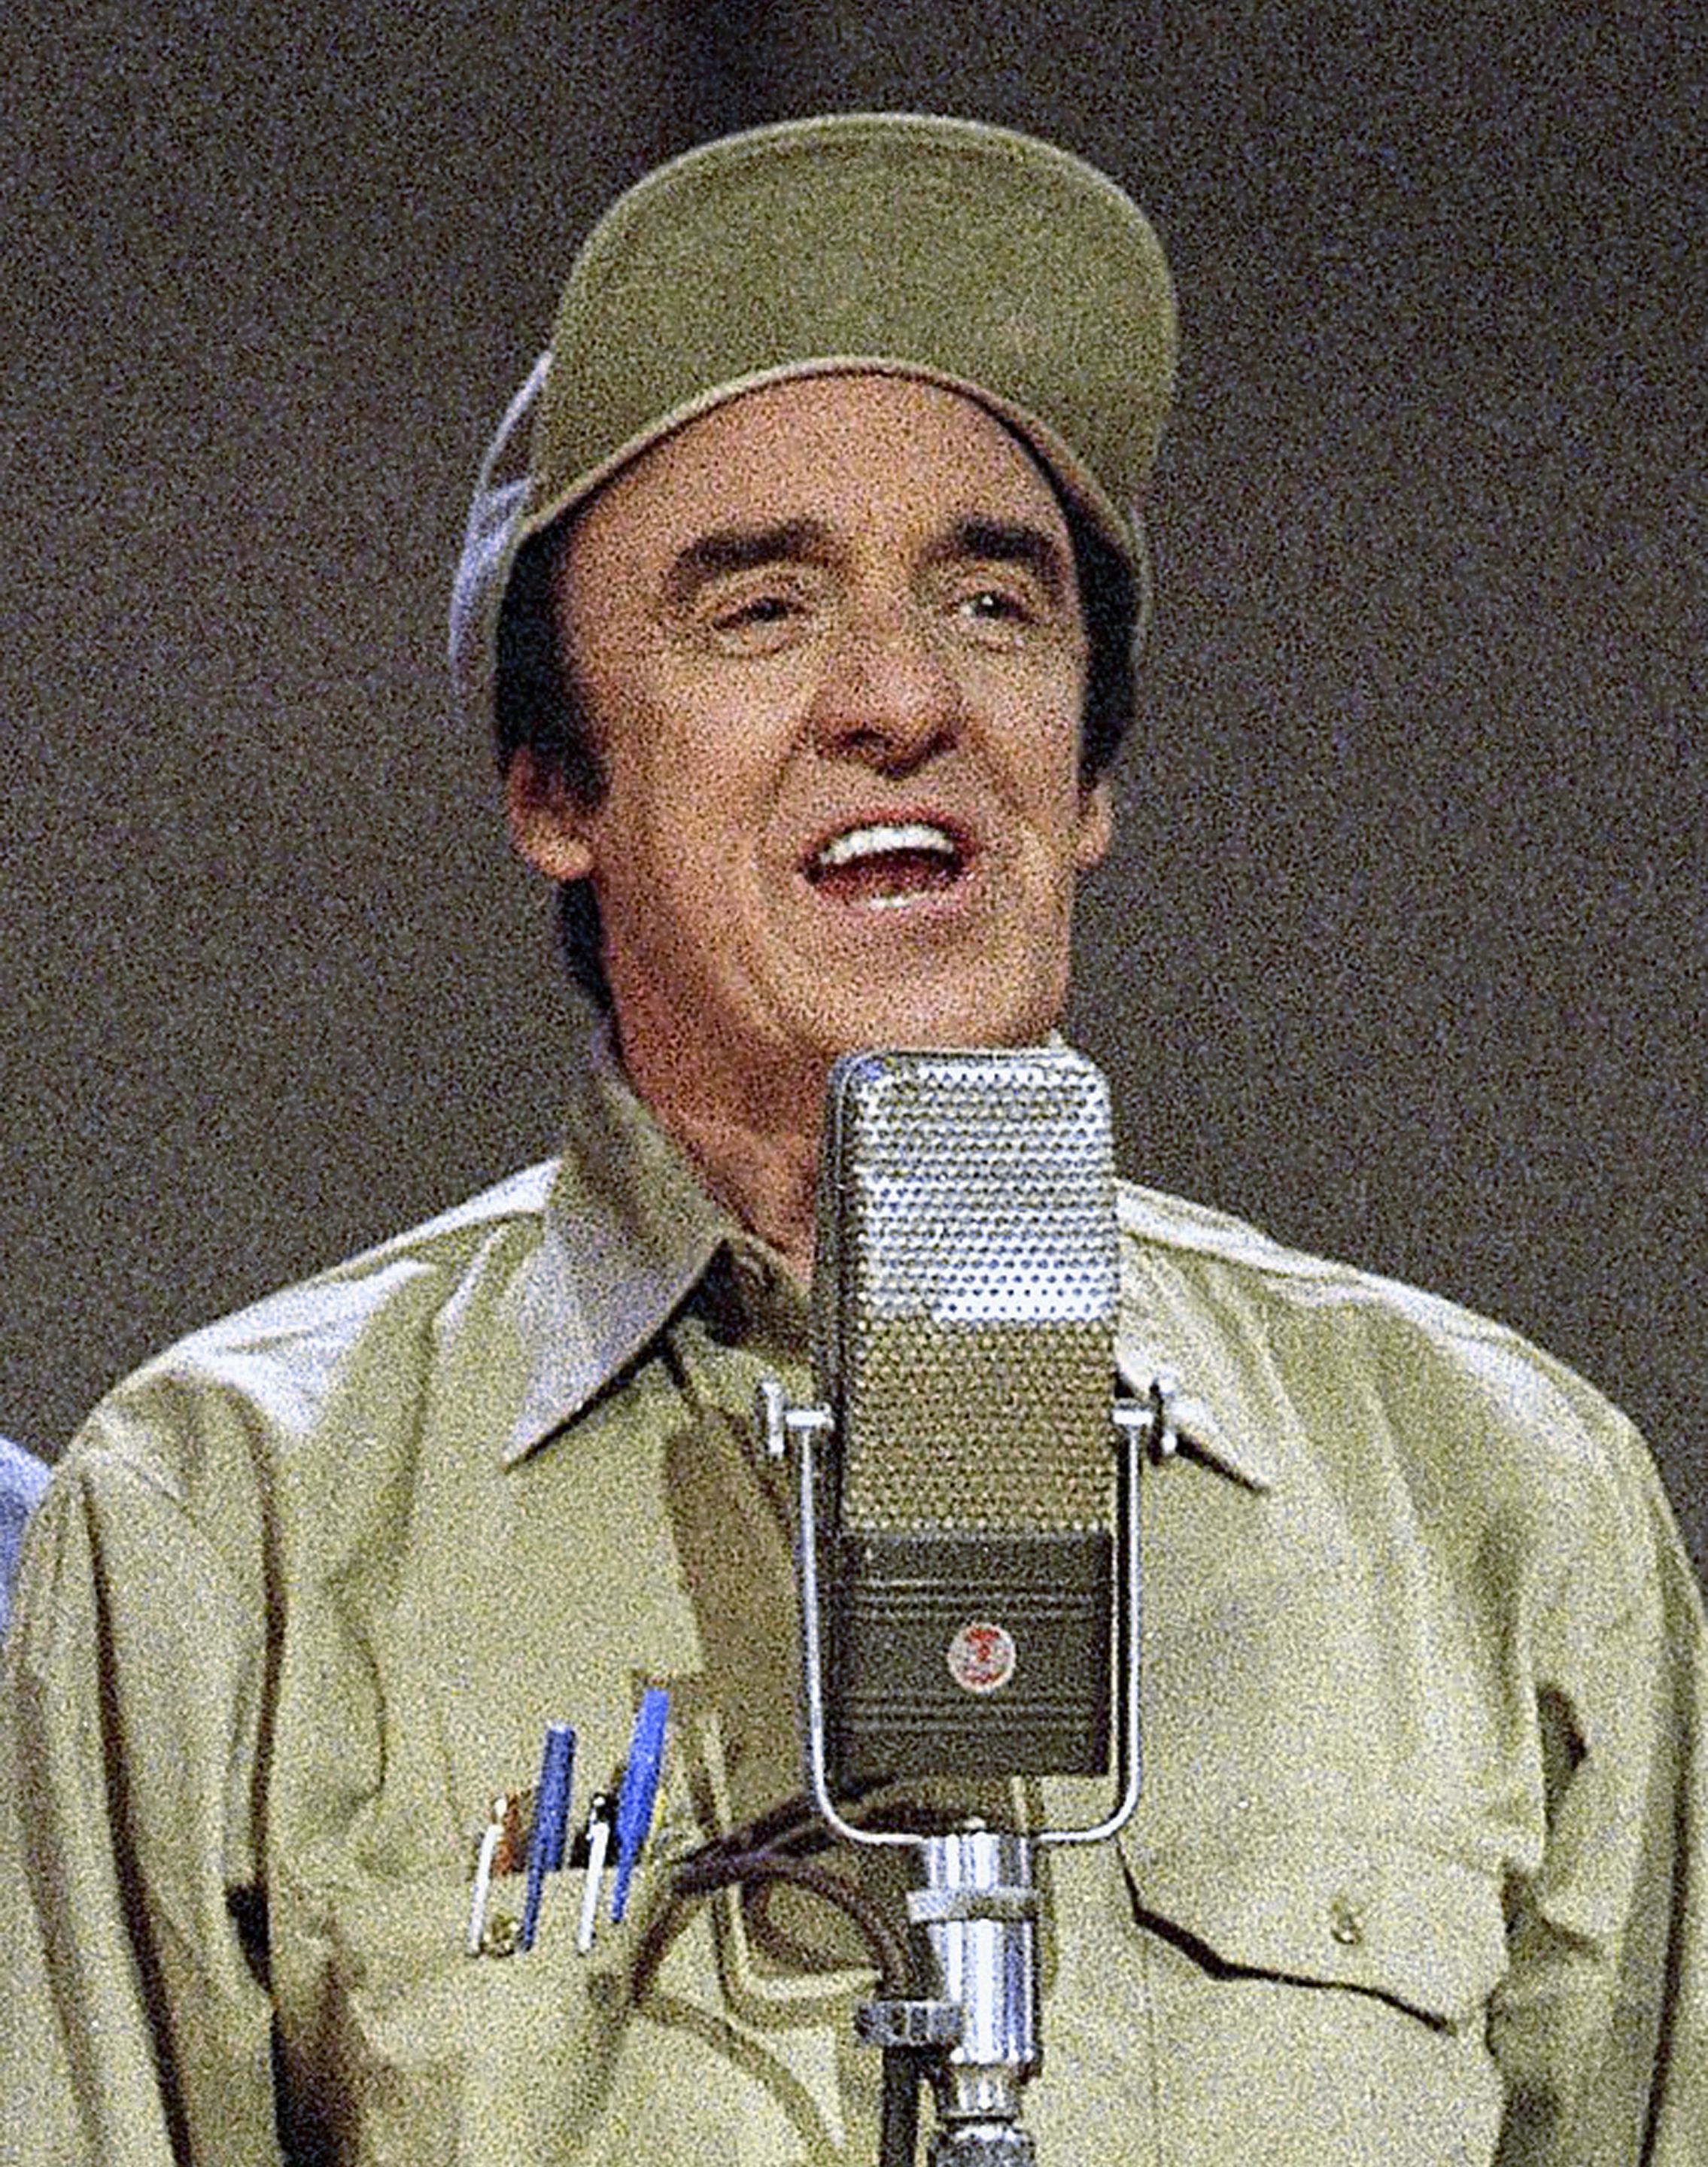 "<div class=""meta image-caption""><div class=""origin-logo origin-image none""><span>none</span></div><span class=""caption-text"">Jim Nabors, the actor who played Gomer Pyle on ""The Andy Griffith Show,"" shown here in 1992, passed away on Nov. 30, 2017 at age 87. (AP, File)</span></div>"